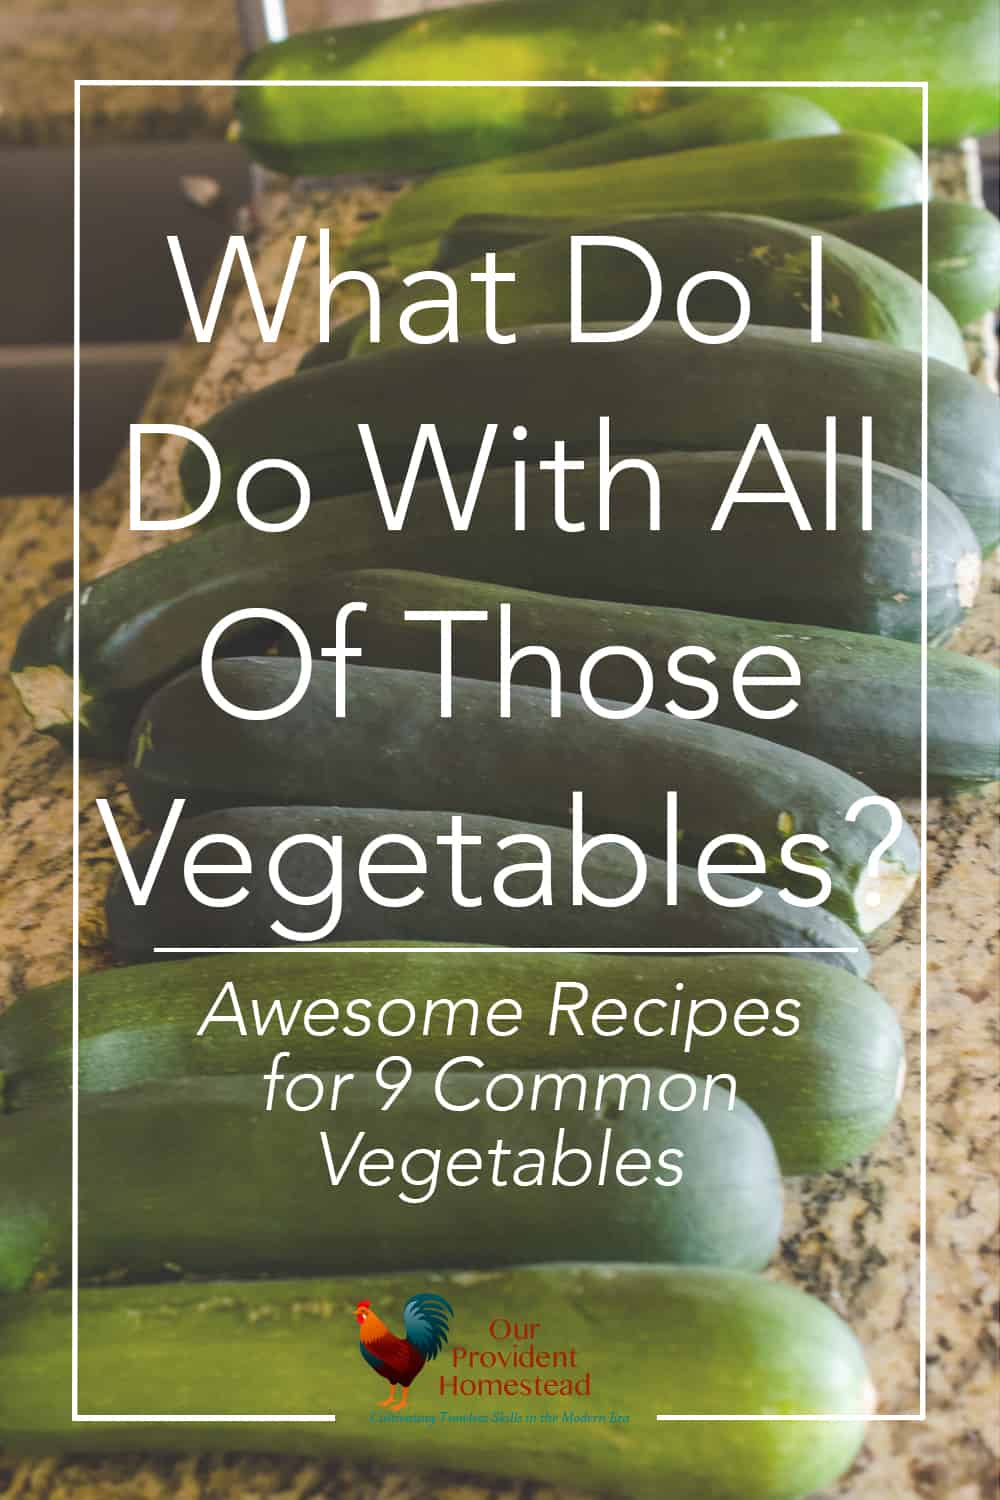 Do you have an abundance of vegetables in your garden? Click here to see what you can do with 9 different vegetables to keep your family healthy. #gardenrecipes #gardening #vegetablegardening